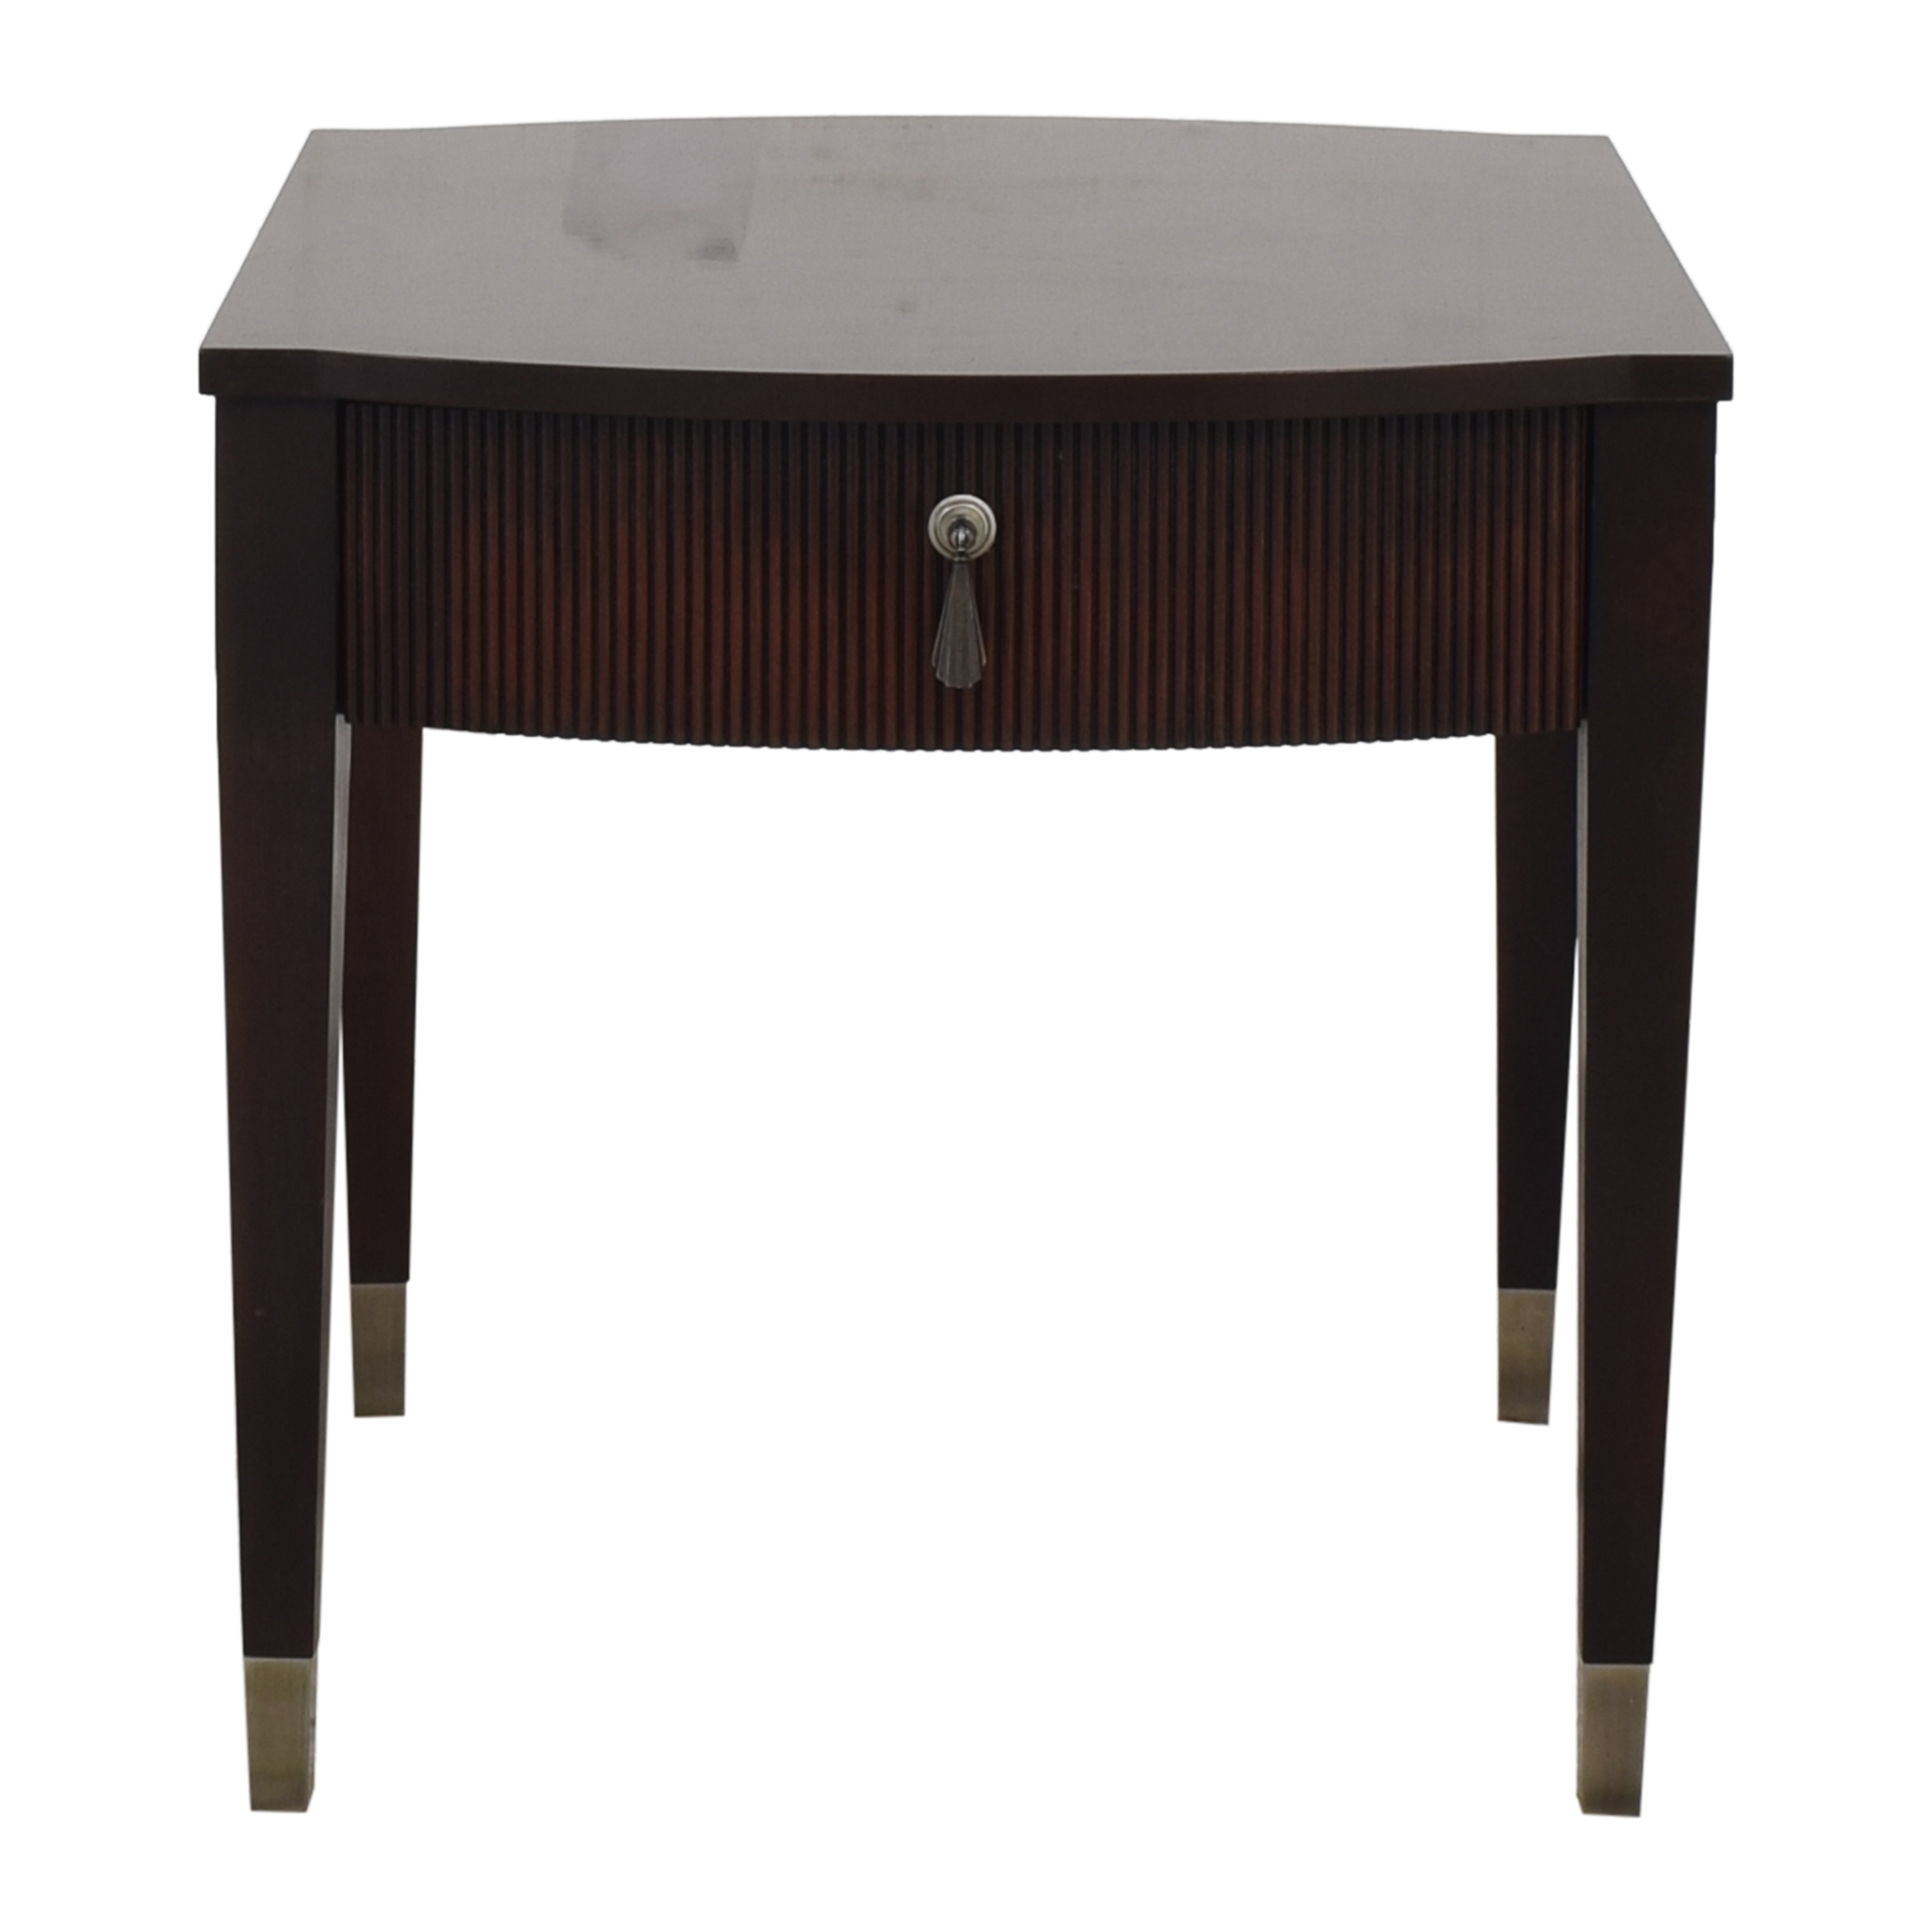 Ethan Allen Ethan Allen Avenue End Table nyc